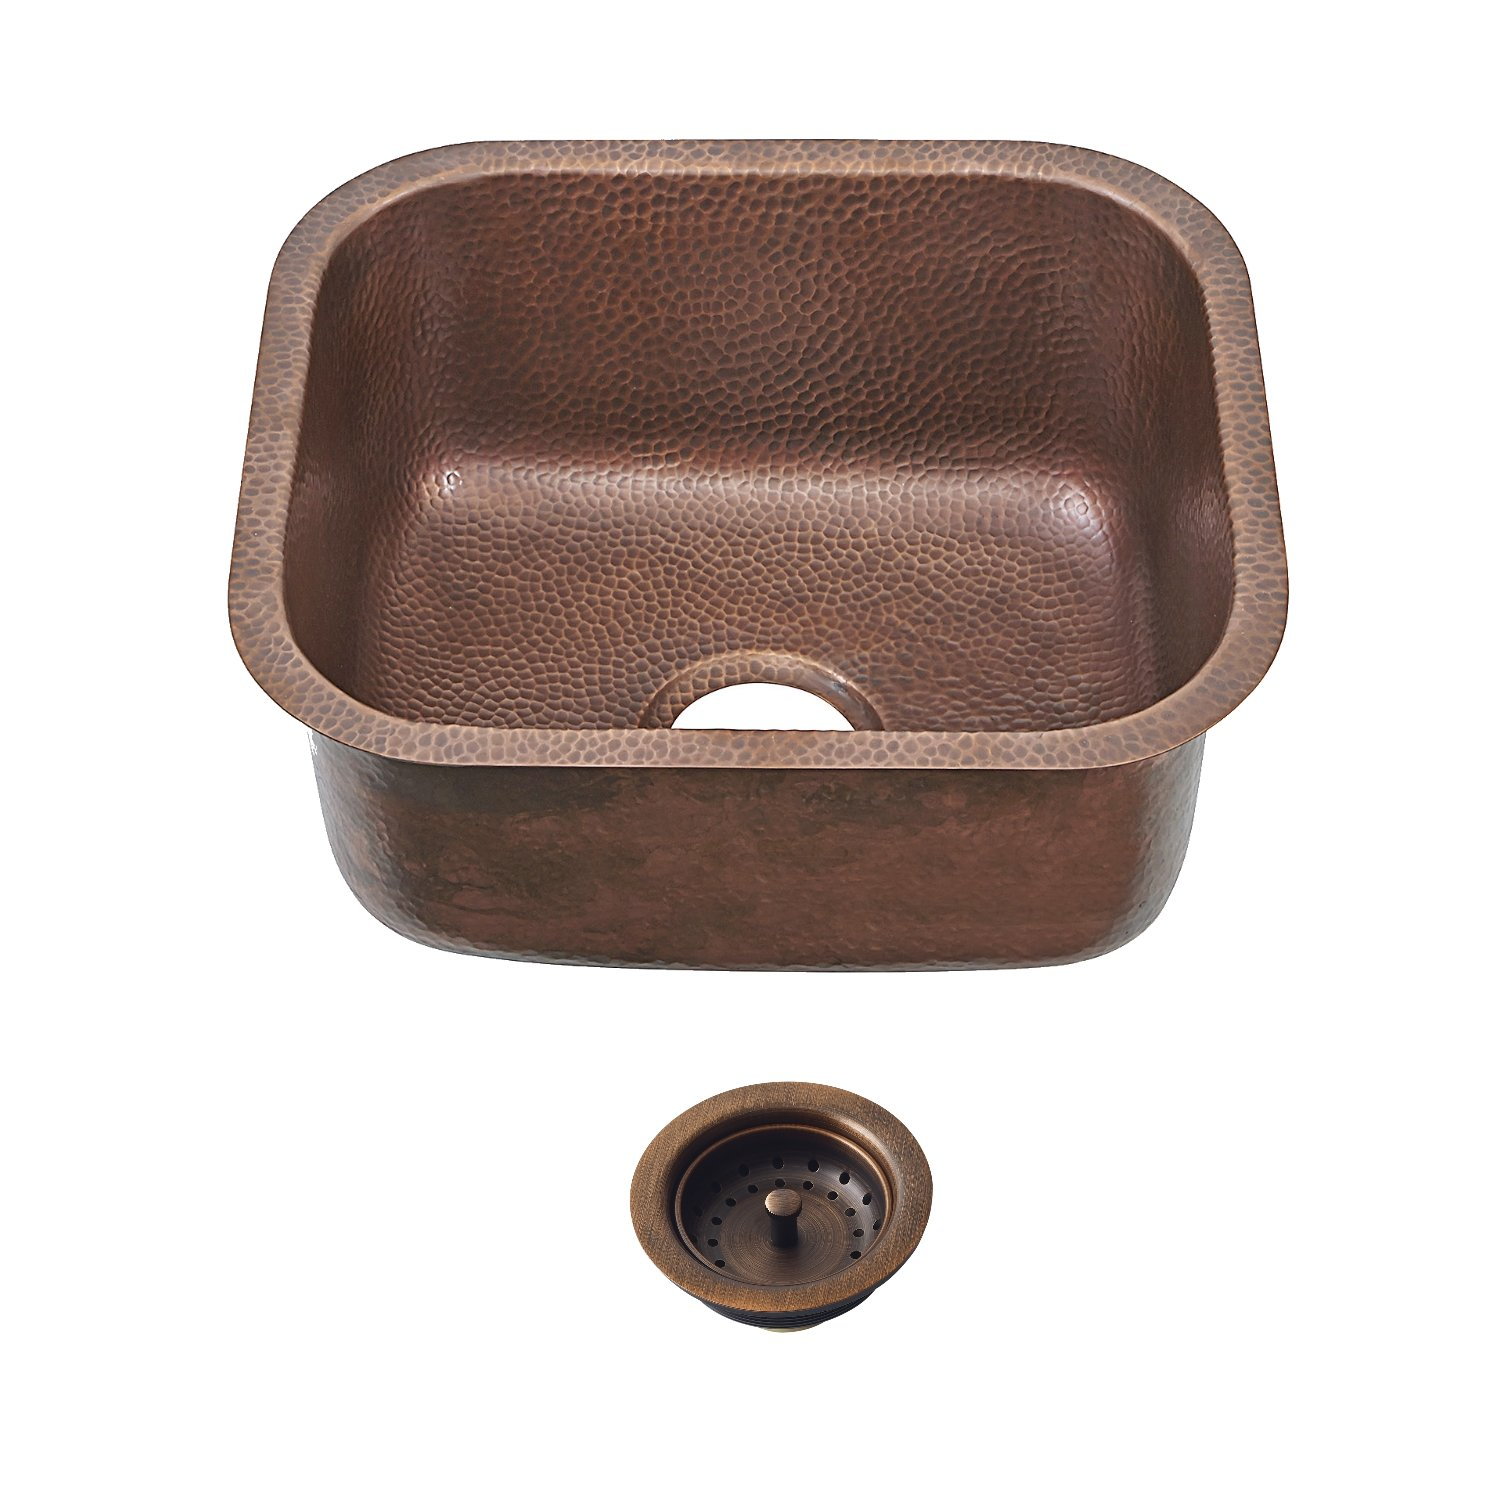 Sinkology SP503-18AC-AMZ-B  Sisley Pro Undercount Bar Prep Copper 18.5 In. Sink Kit With Strainer Drain Copper Kitchen Sink, 18.5 X 16.5 X 9'', Antique Copper